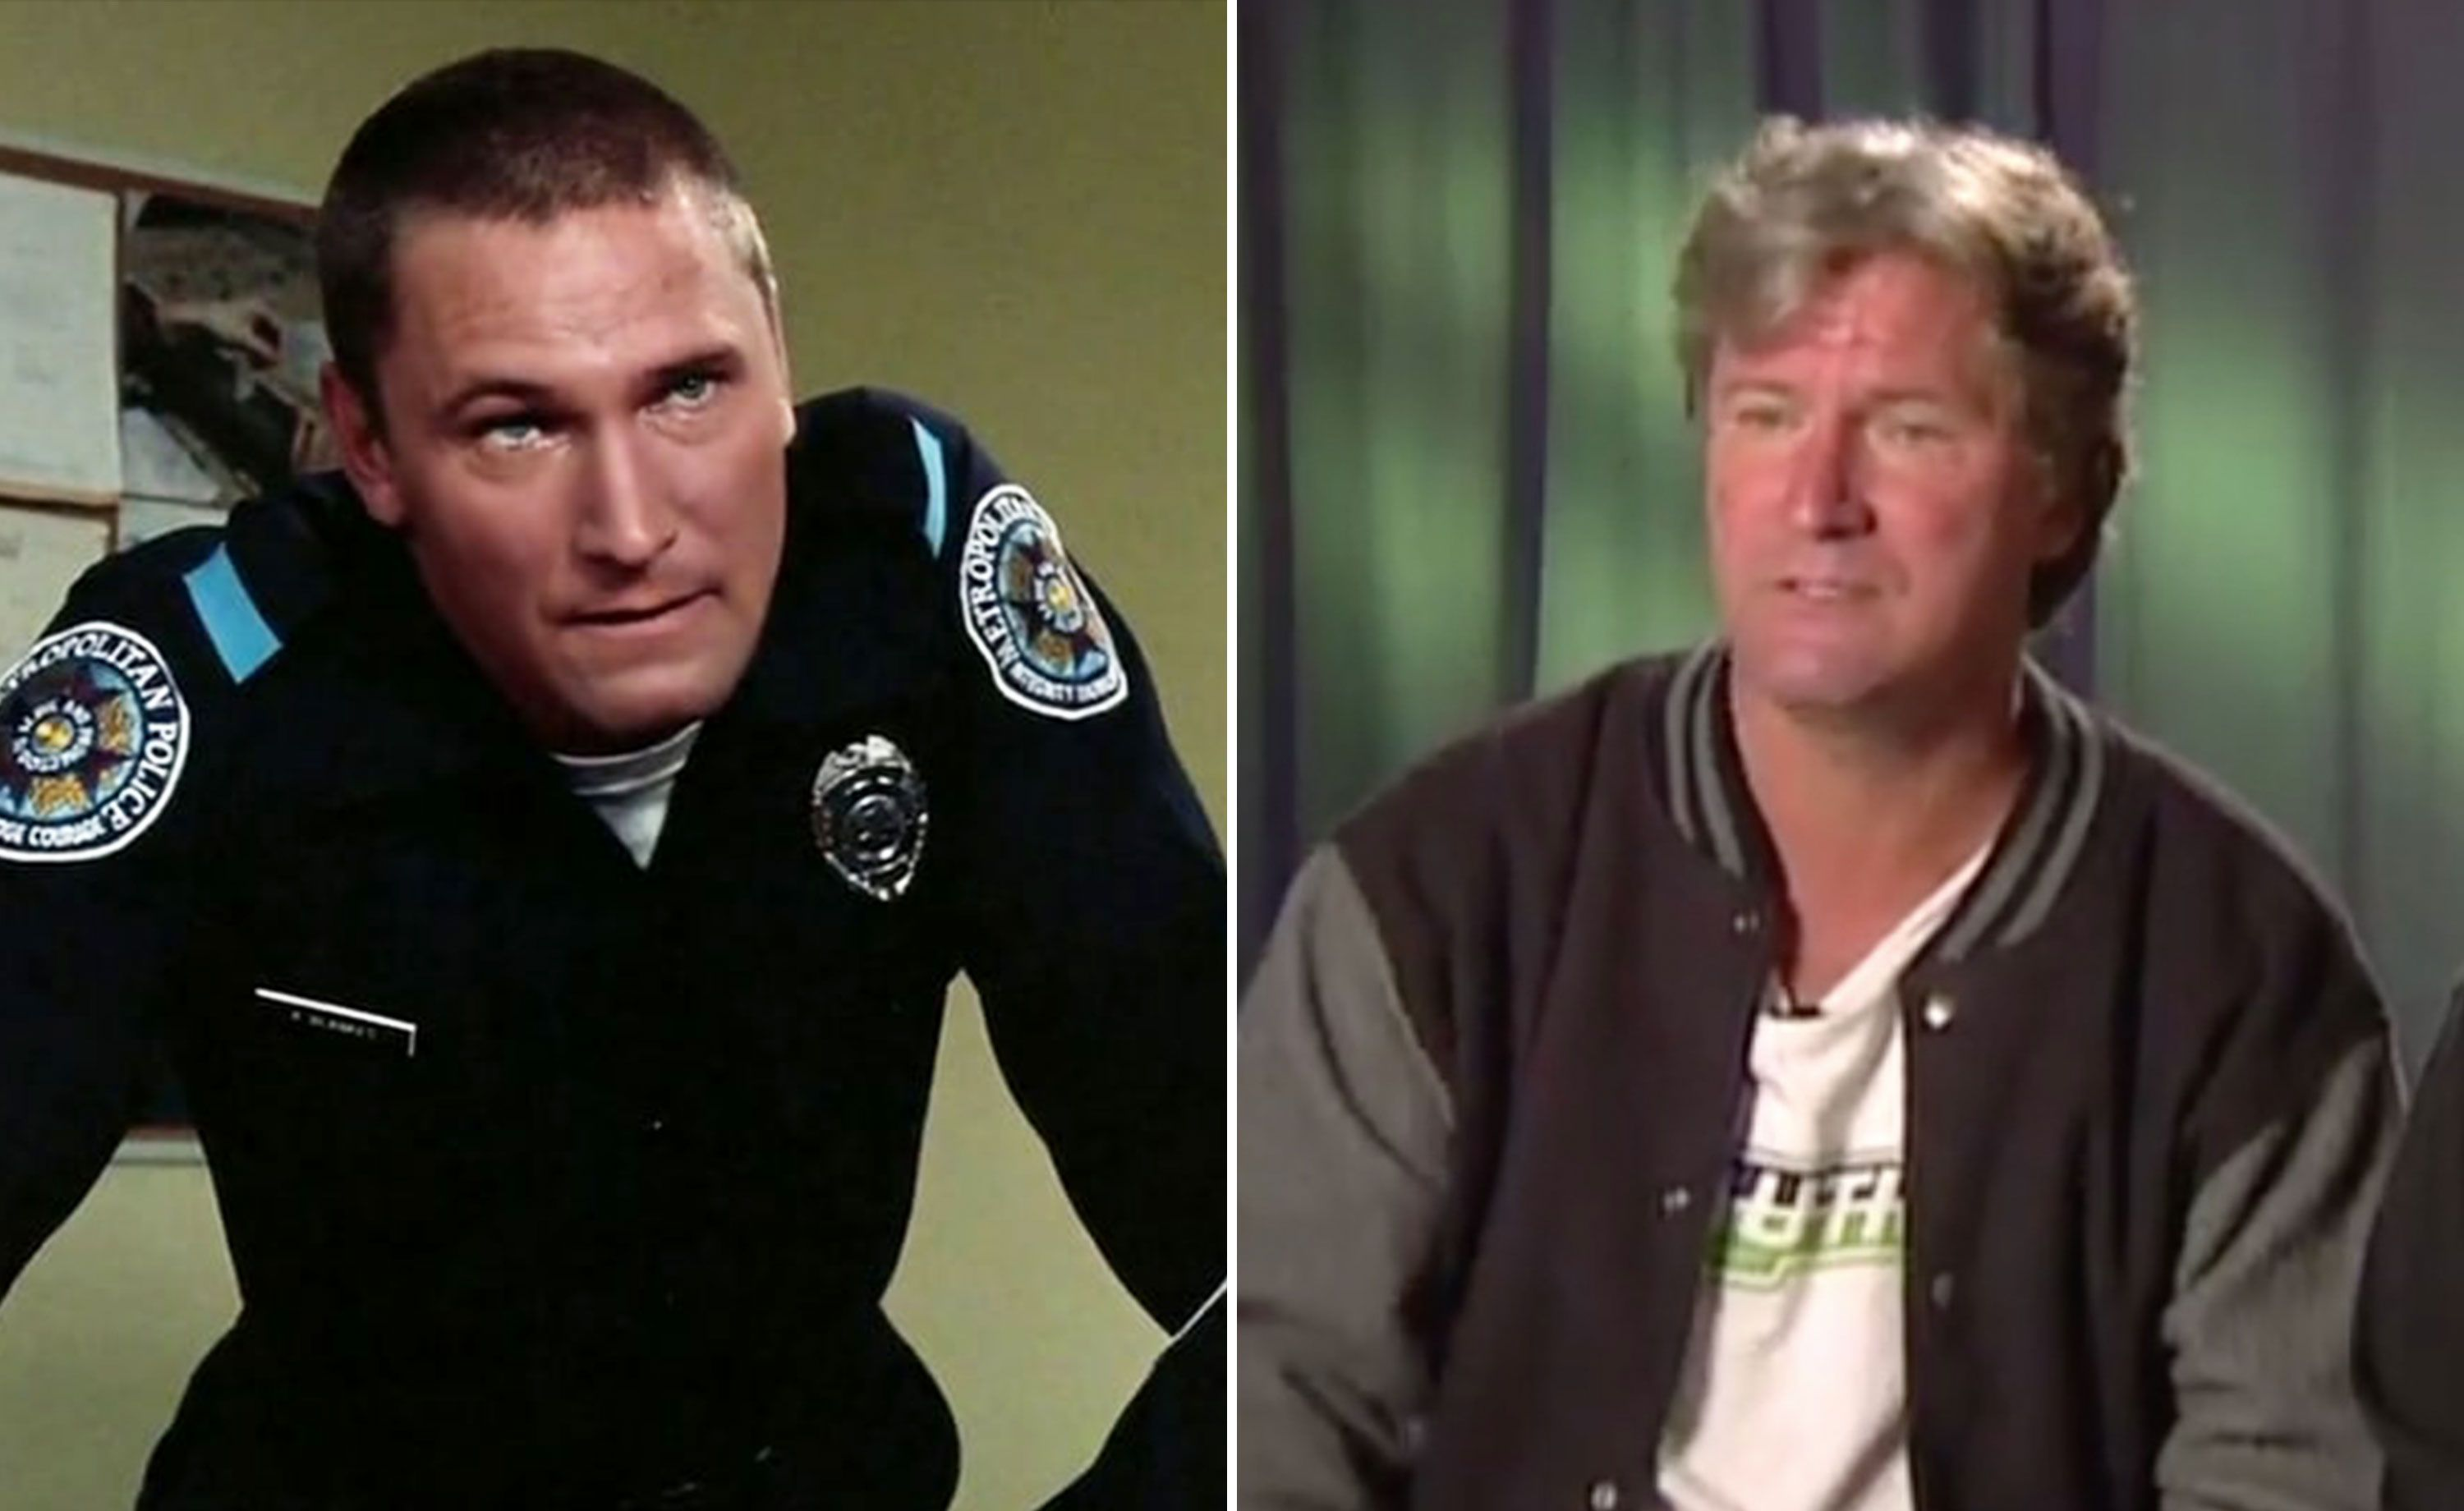 Police Academy: Where Are They Now?